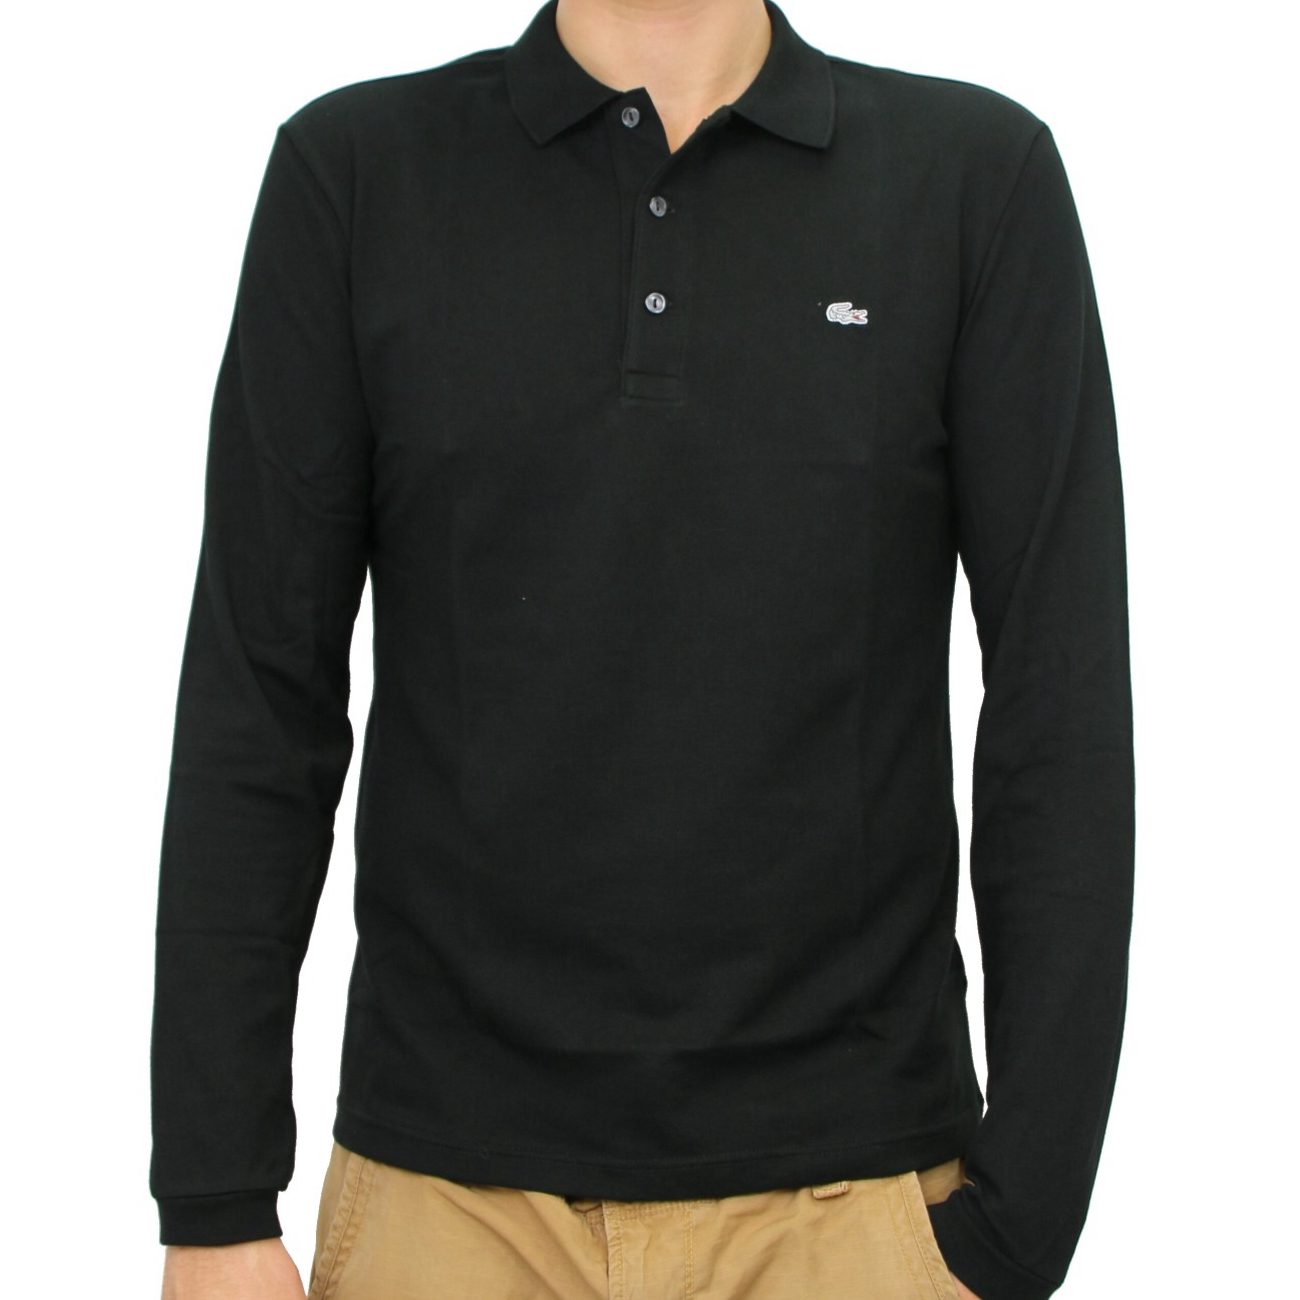 lacoste polo slim fit poloshirt polohemd langarm herren diverse farben ph4010 ebay. Black Bedroom Furniture Sets. Home Design Ideas